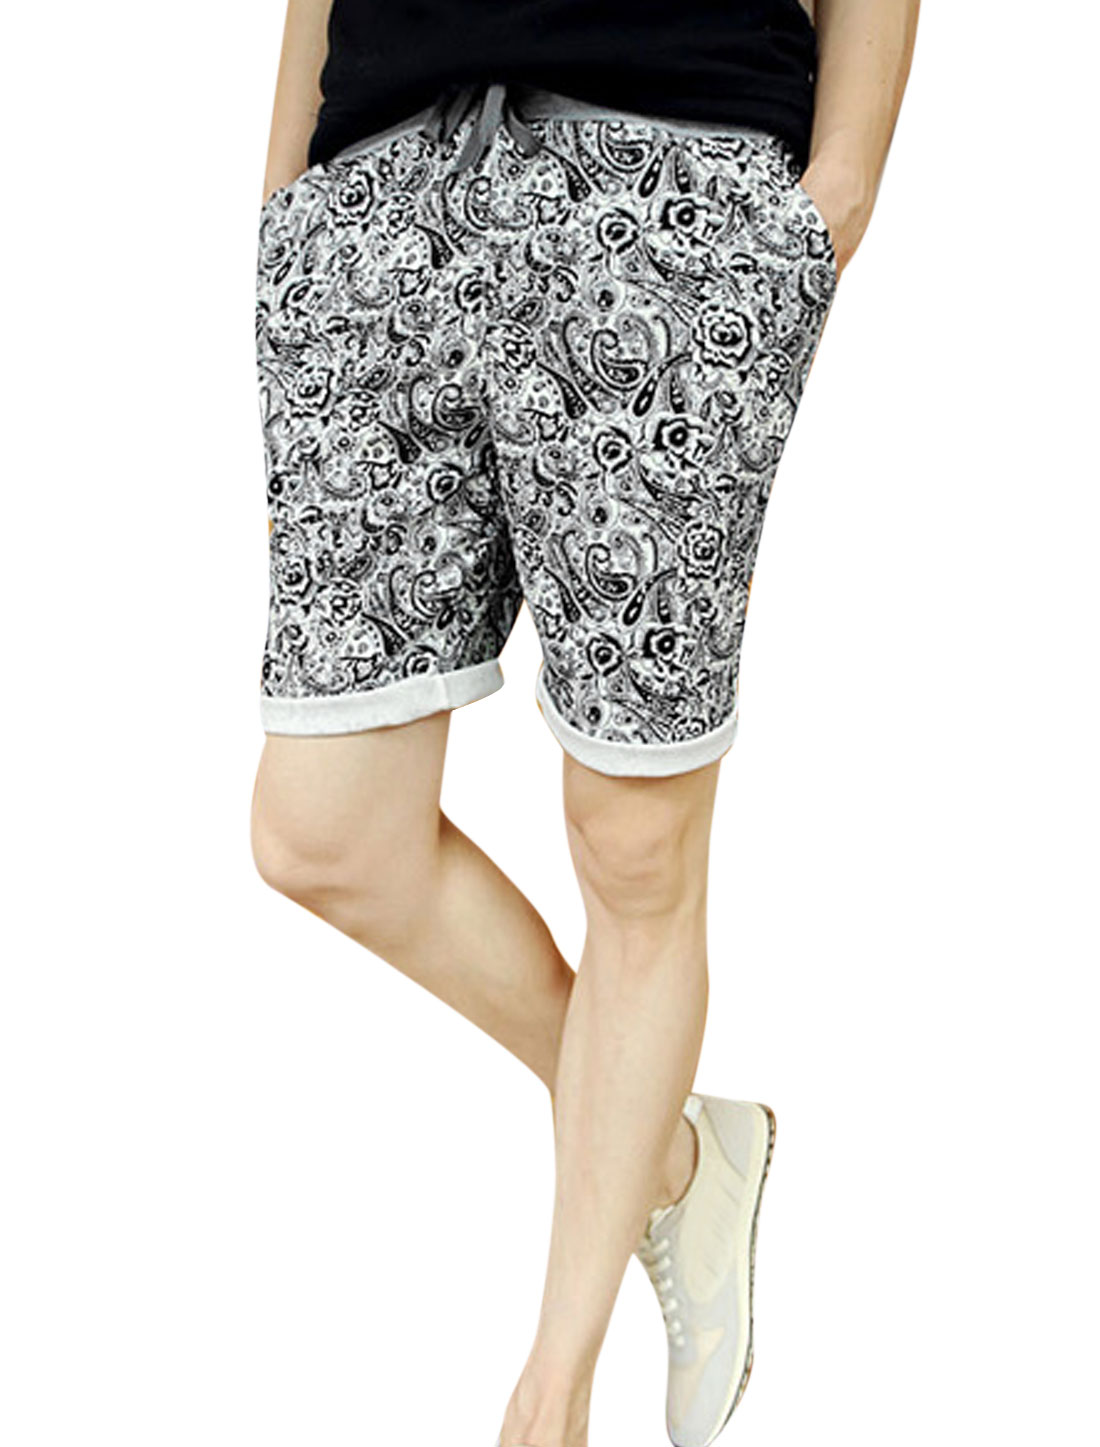 Man Paisleys Prints Drawstring Stretchy Waist Slim Casual Short Pants Black W28